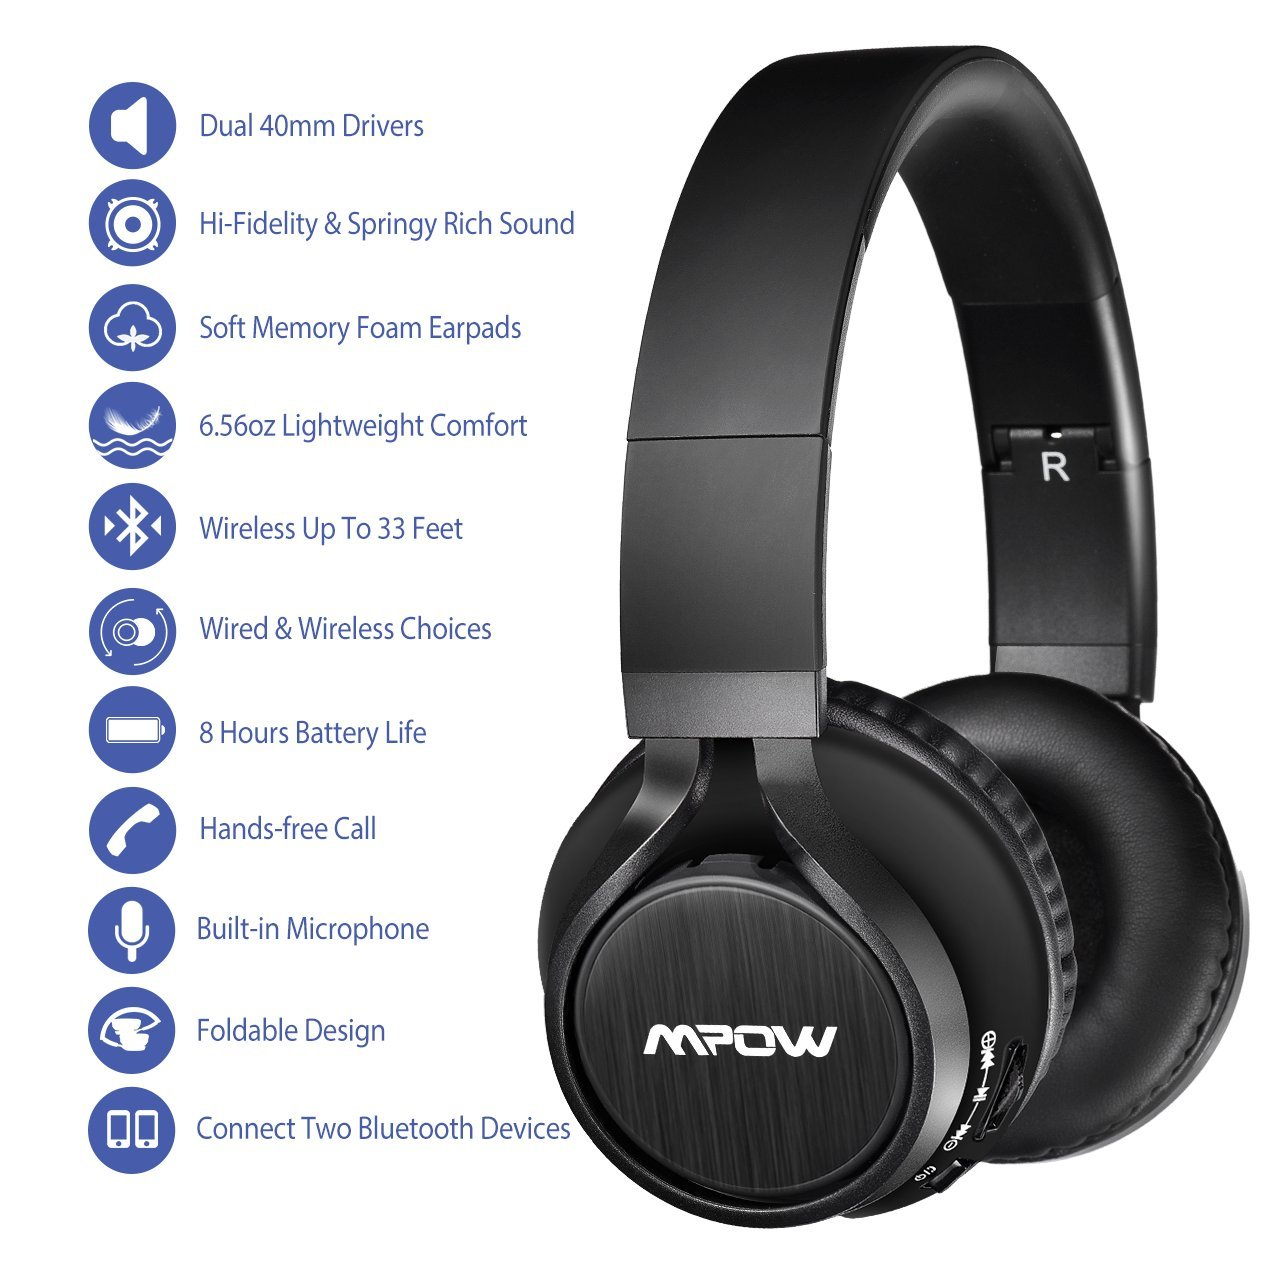 Amazon.com: Mpow Thor Bluetooth Headphones On Ear, 40mm Driver Wireless Headset Foldable with Mic, Wired and Wireless Headphones for Cell Phone/TV/PC: ...